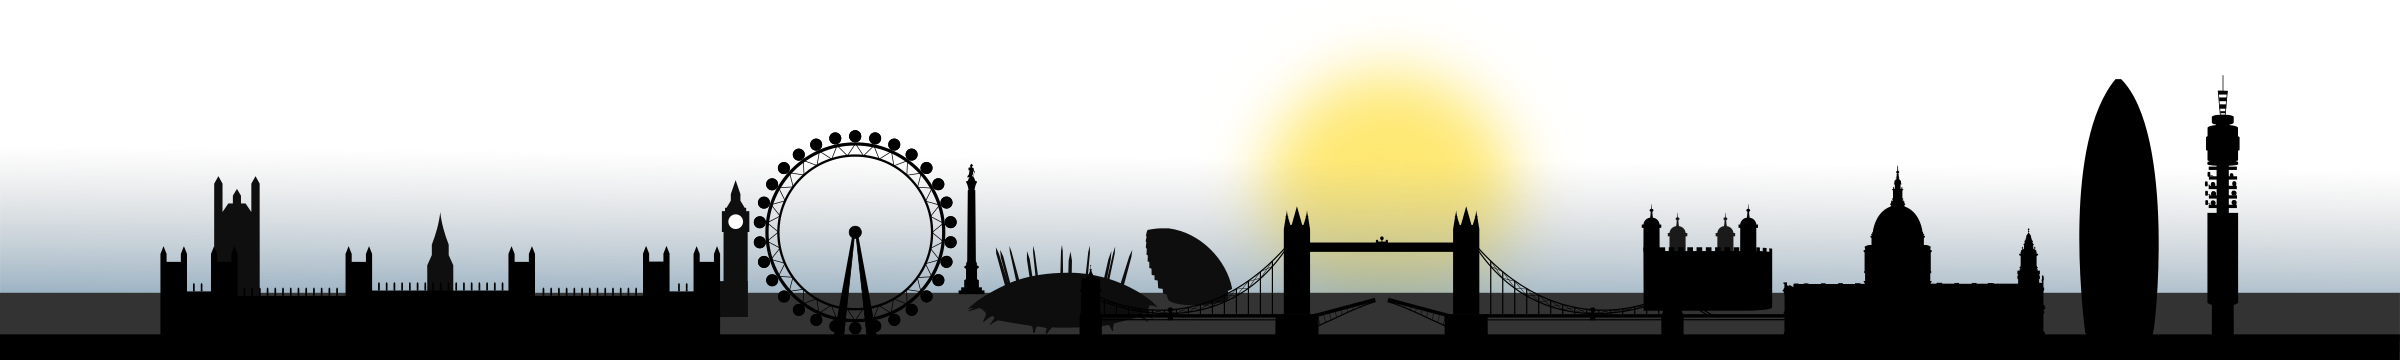 London Skyline 2.0 by ryrych